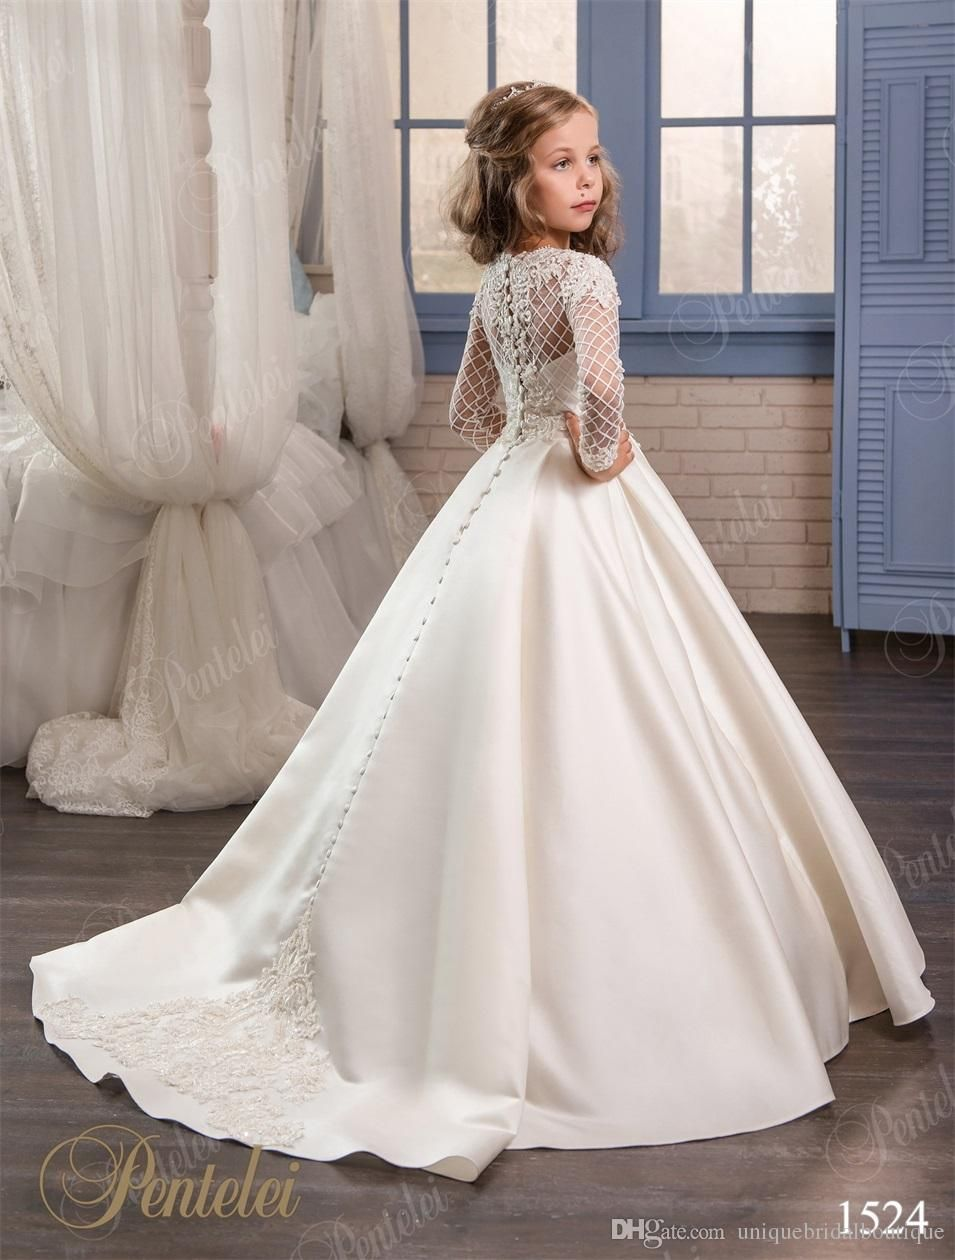 Wedding dresses for little girls 2017 pentelei cheap with long wedding dresses for little girls 2017 pentelei cheap with long sleeves and pockets appliques satin ivory flower girl dresses toddler white dress to ombrellifo Image collections